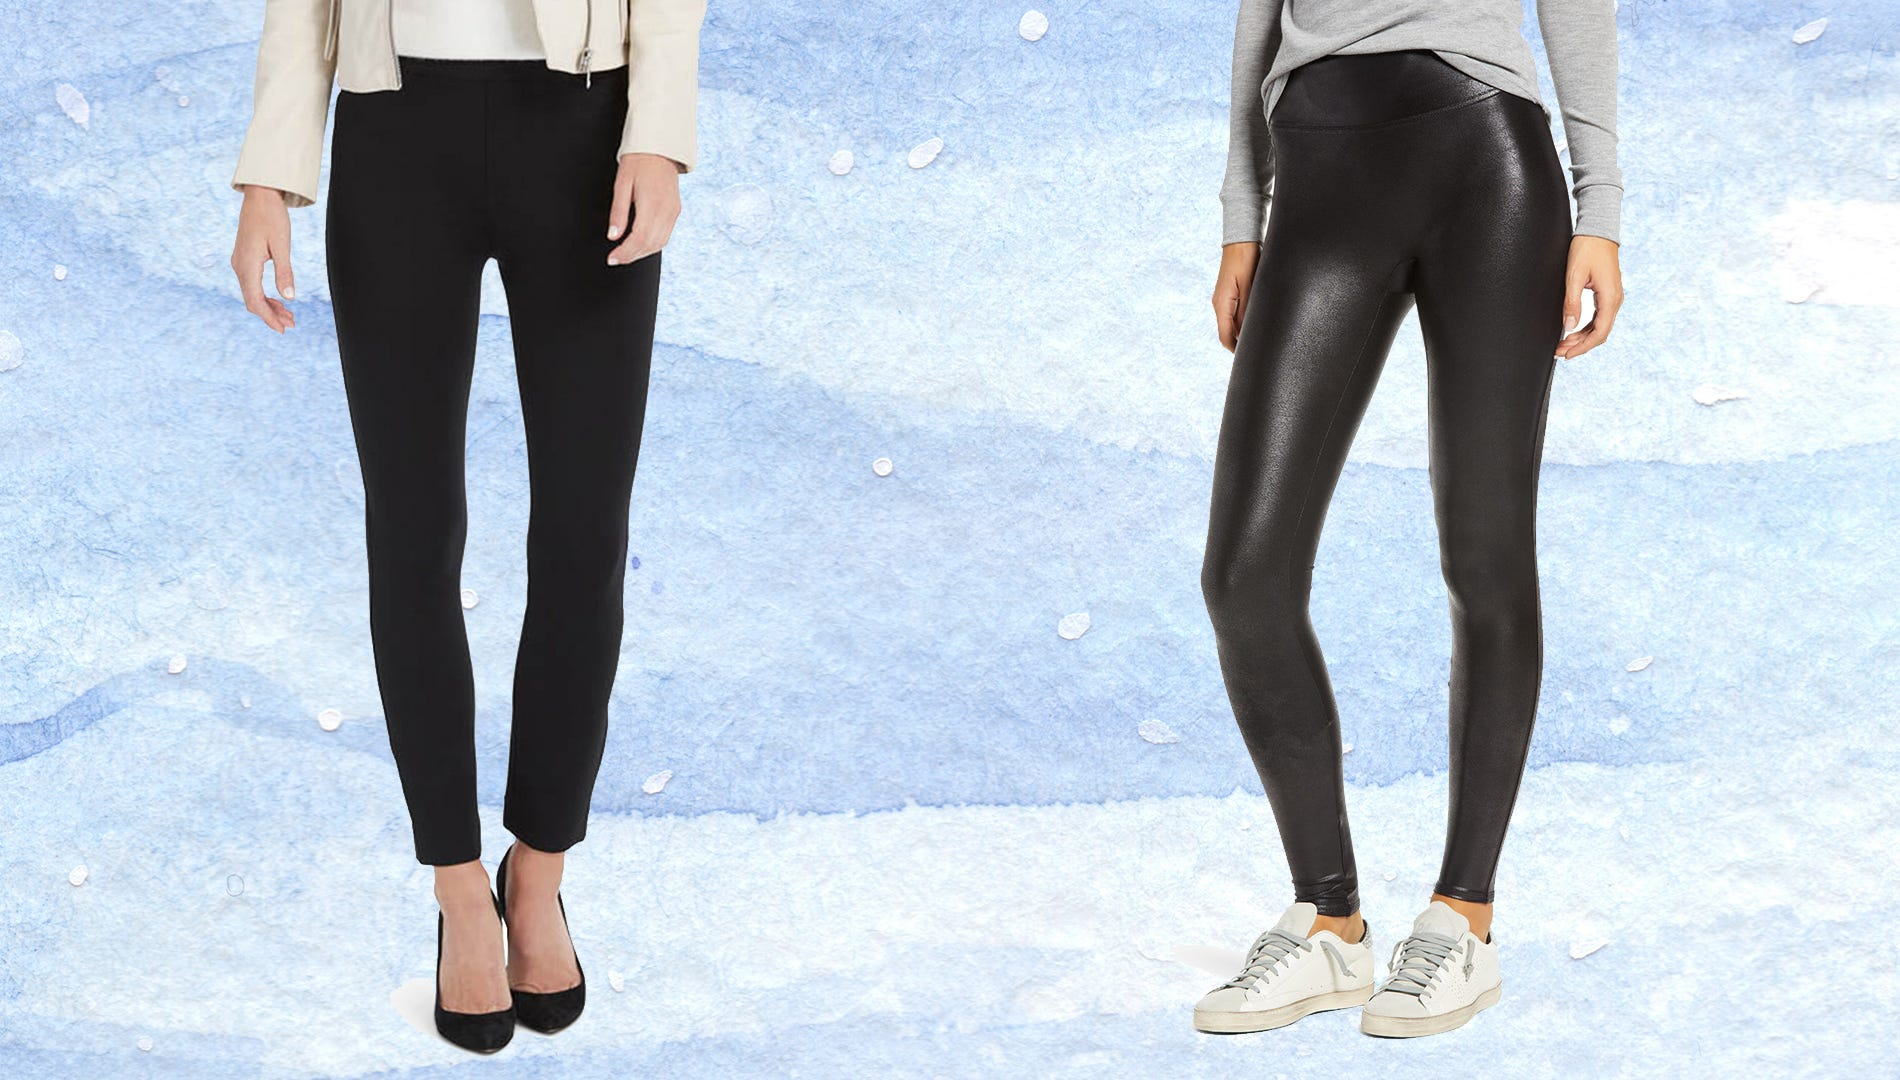 Spanx leggings are majorly marked down at the Nordstrom Anniversary Sale 2021